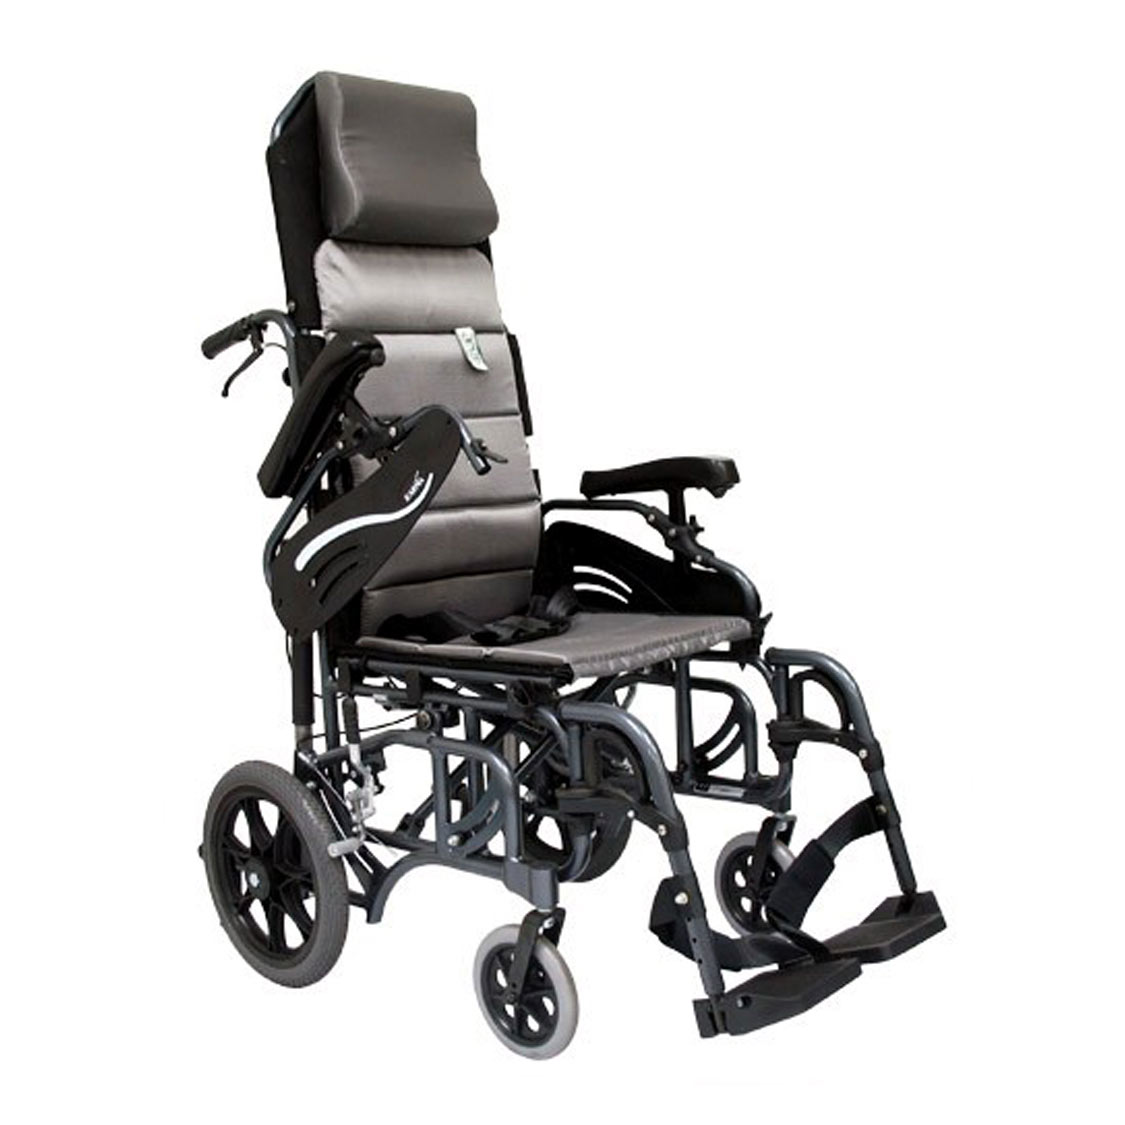 Karman healthcare tilt-in-space transport wheelchair